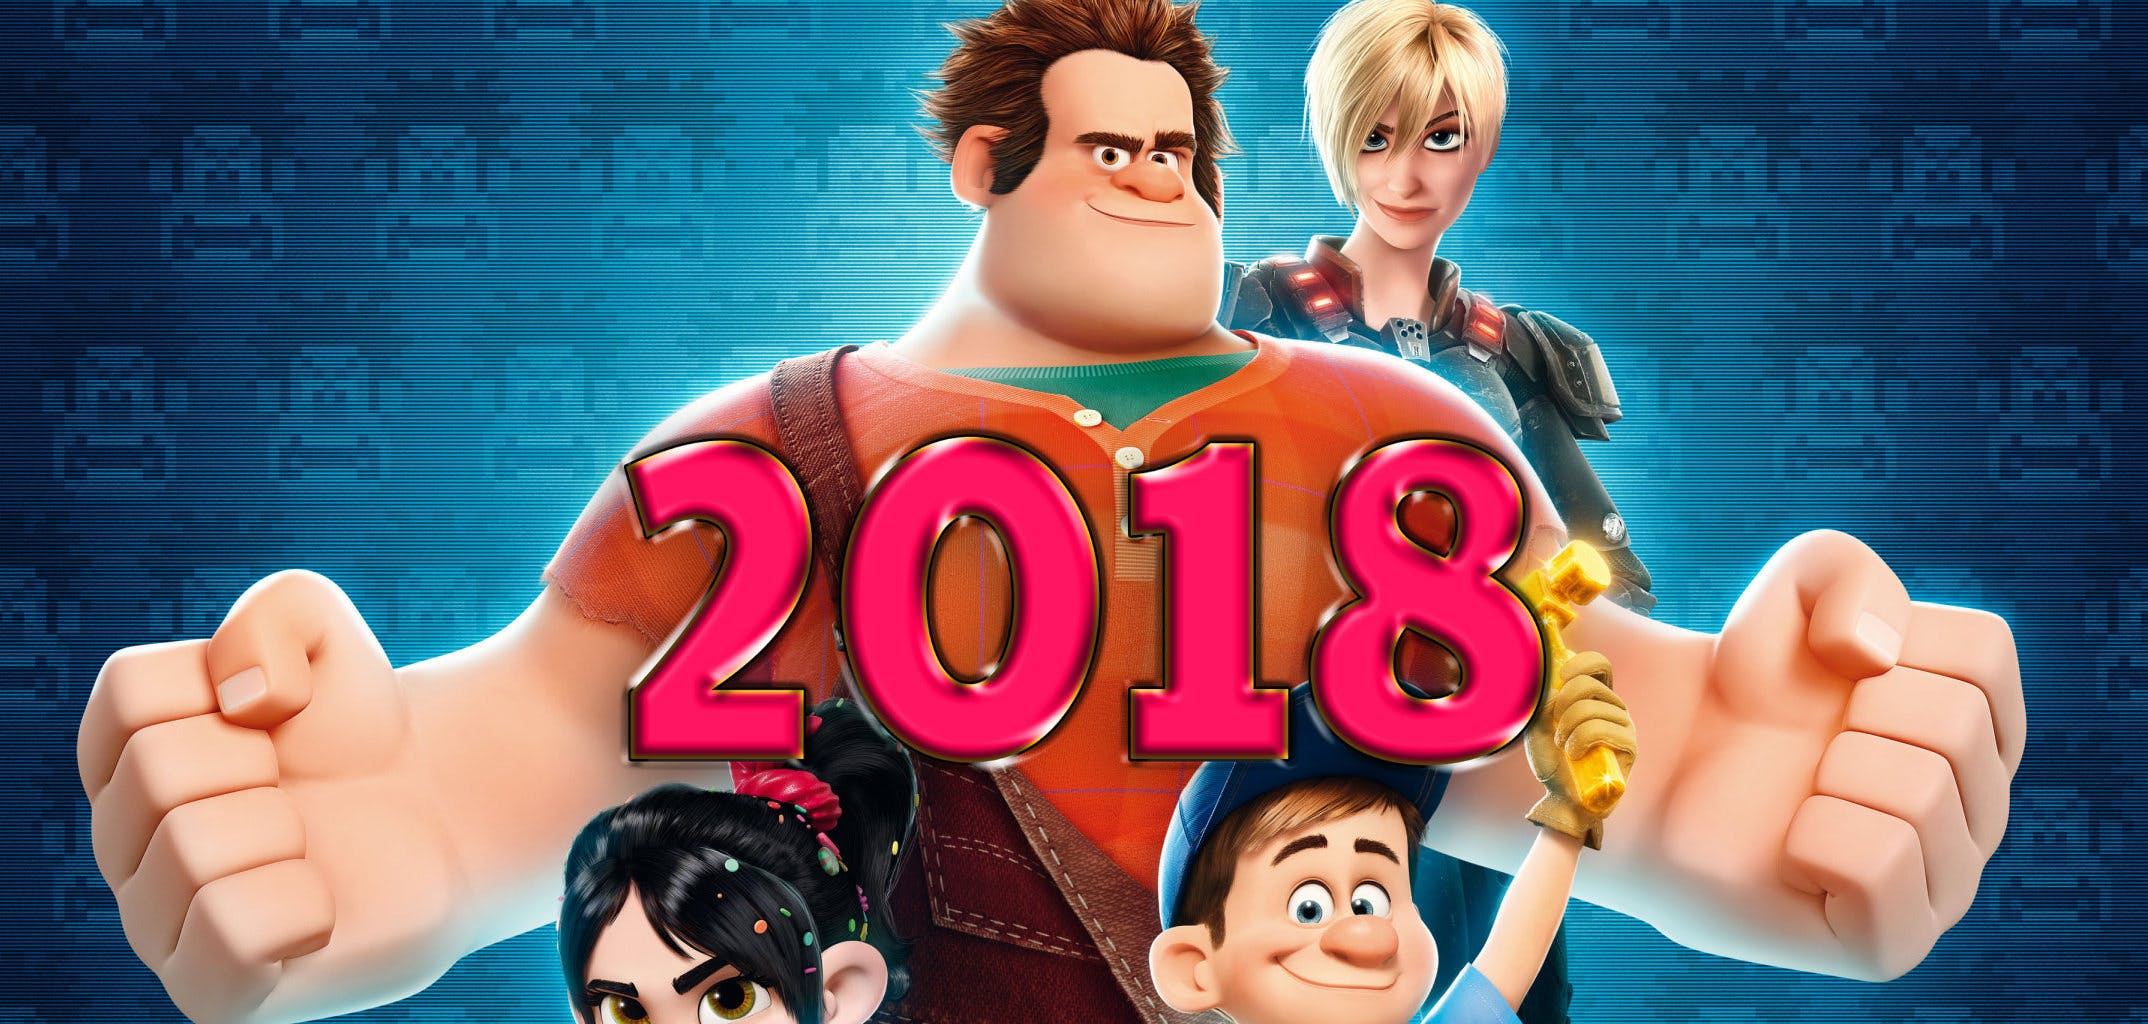 New Wreck-It Ralph 2 Promo Breaks Onto The Web To Celebrate The New Year